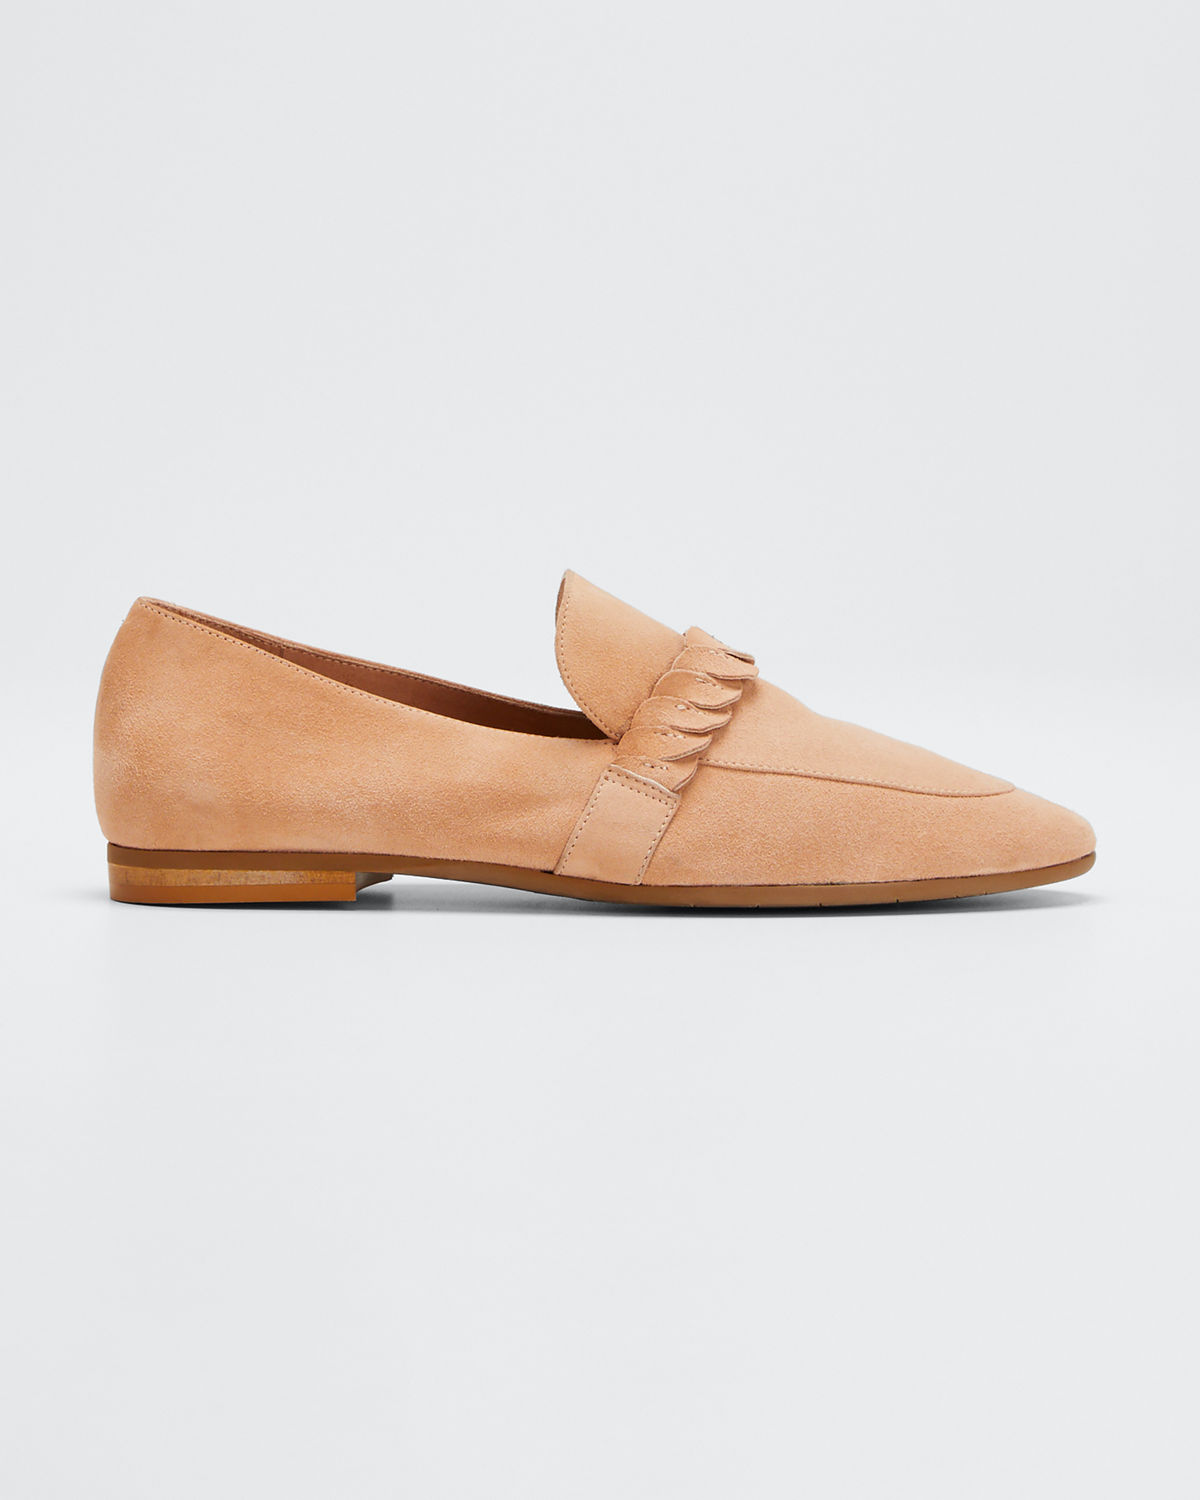 Aquatalia Loafers CARLEE SUEDE SLIP-ON LOAFERS